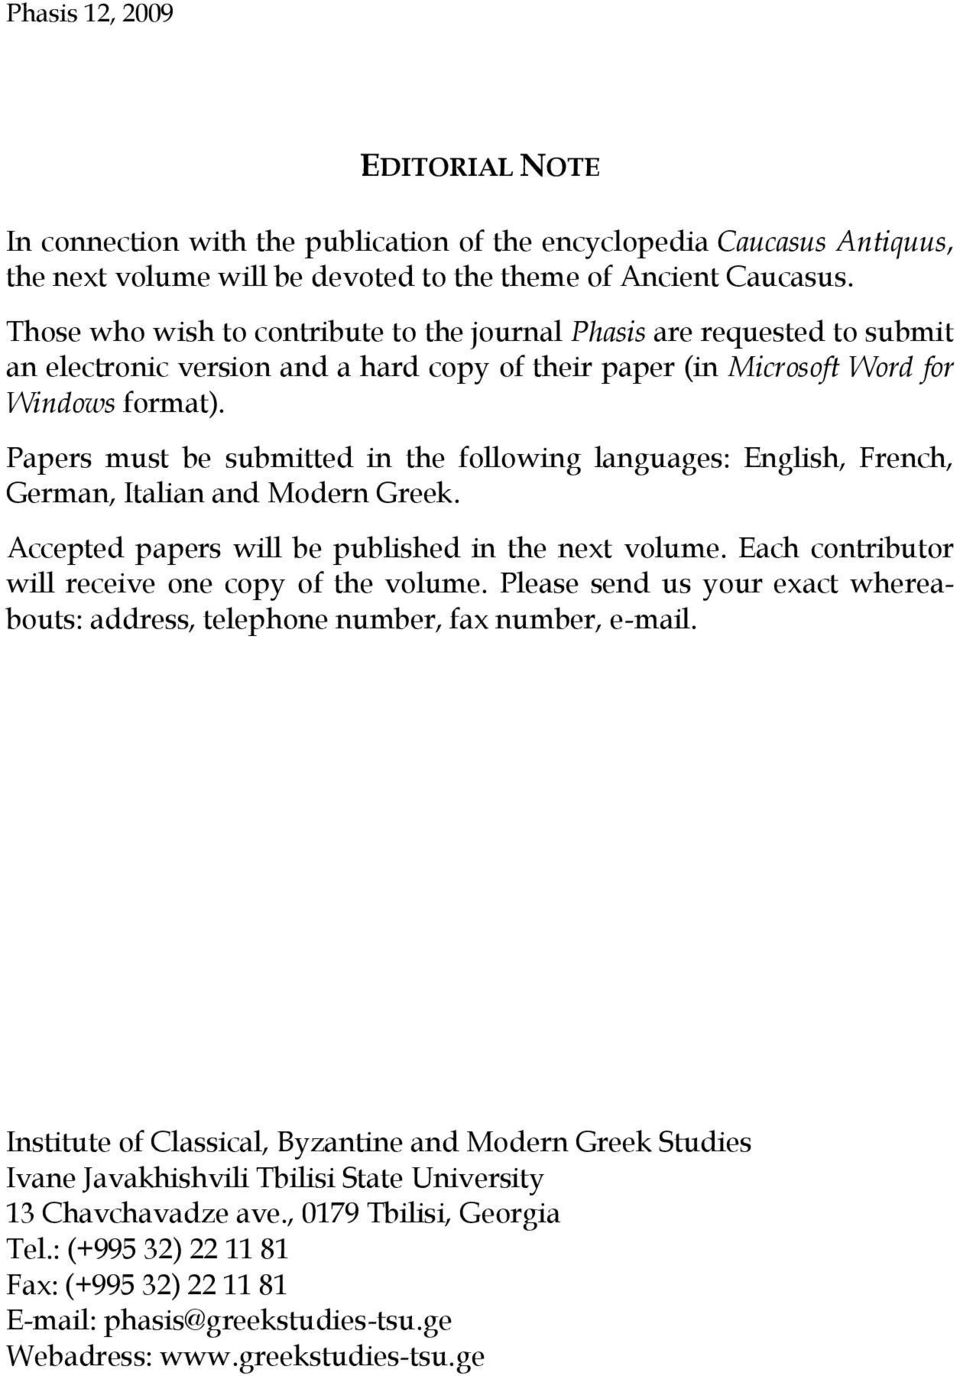 Papers must be submitted in the following languages: English, French, German, Italian and Modern Greek. Accepted papers will be published in the next volume.